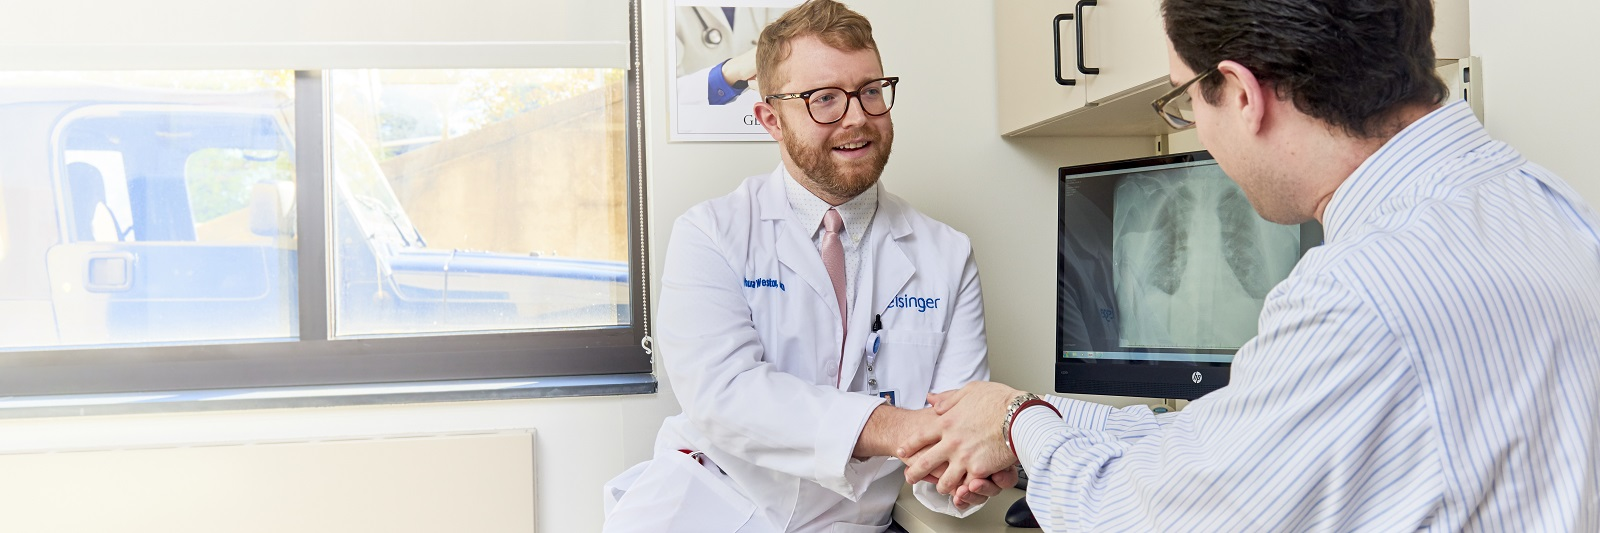 Doctor shaking patient hands